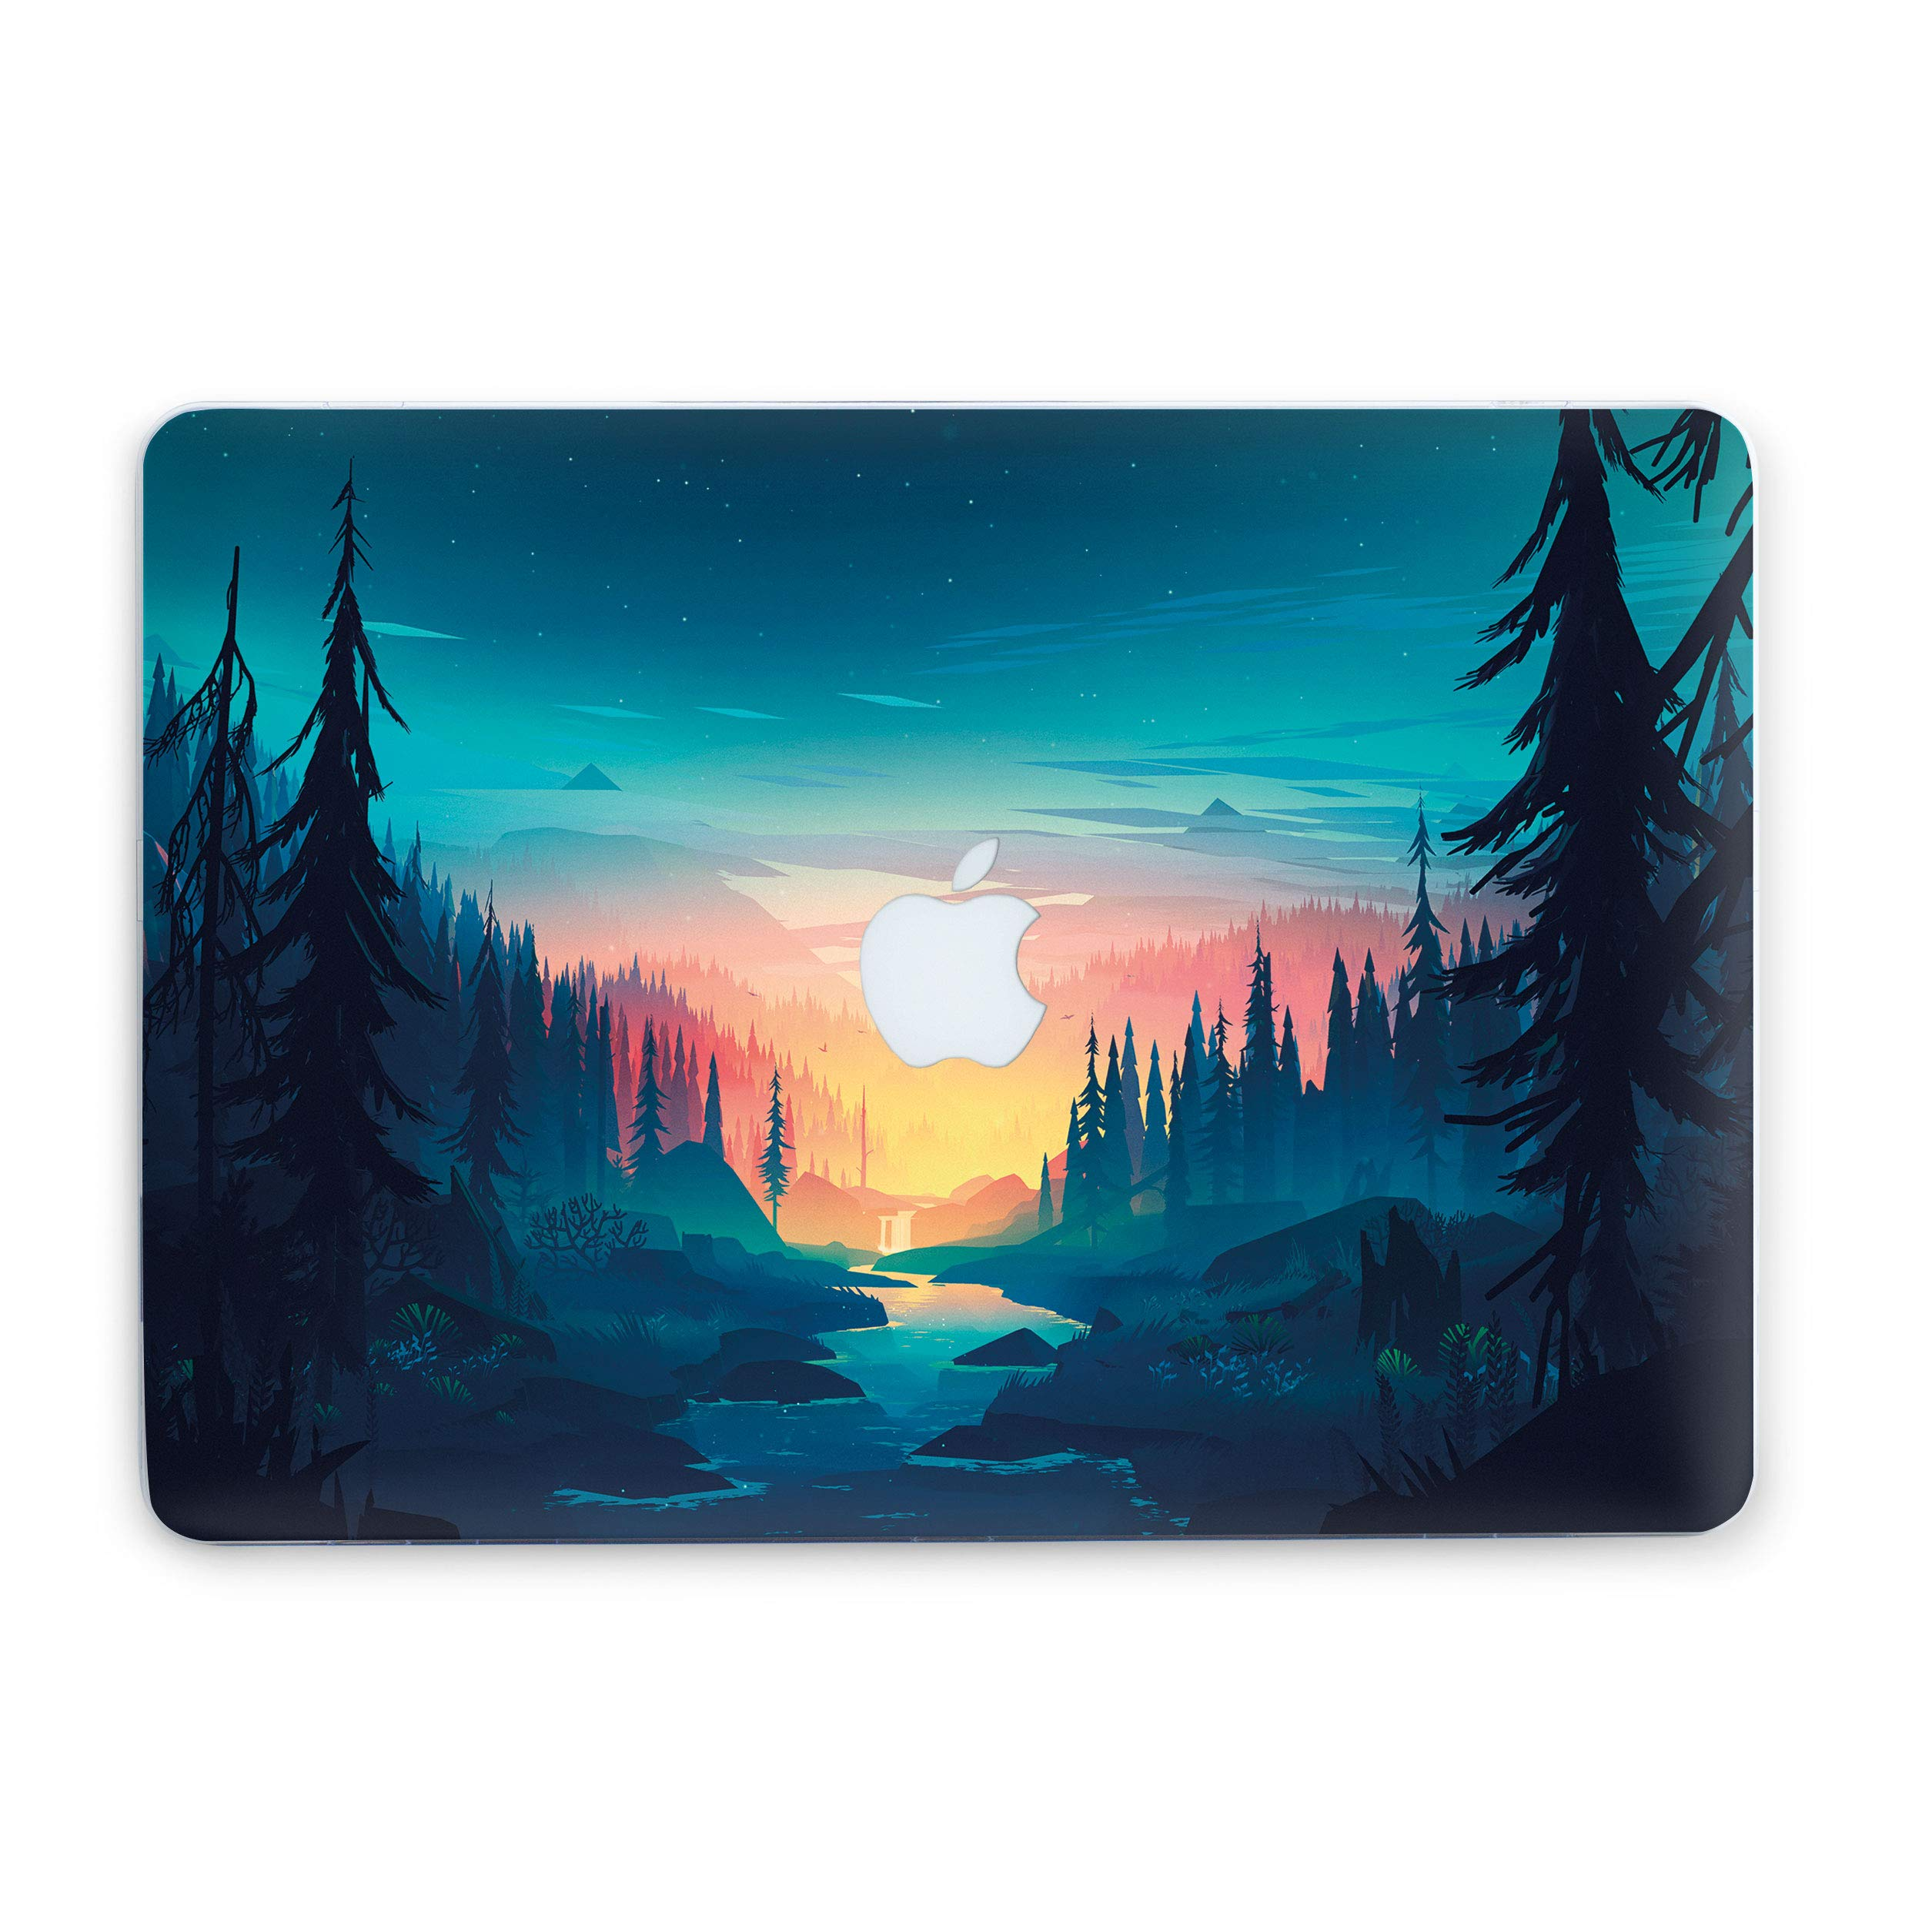 MacBook Case Nature Inspired View Landscape Protective Durable Cover for Laptop Hard Case with Printed Bottom (Air 13 (A1369 & A1466), Morning Forest) by GoodMood (Image #1)